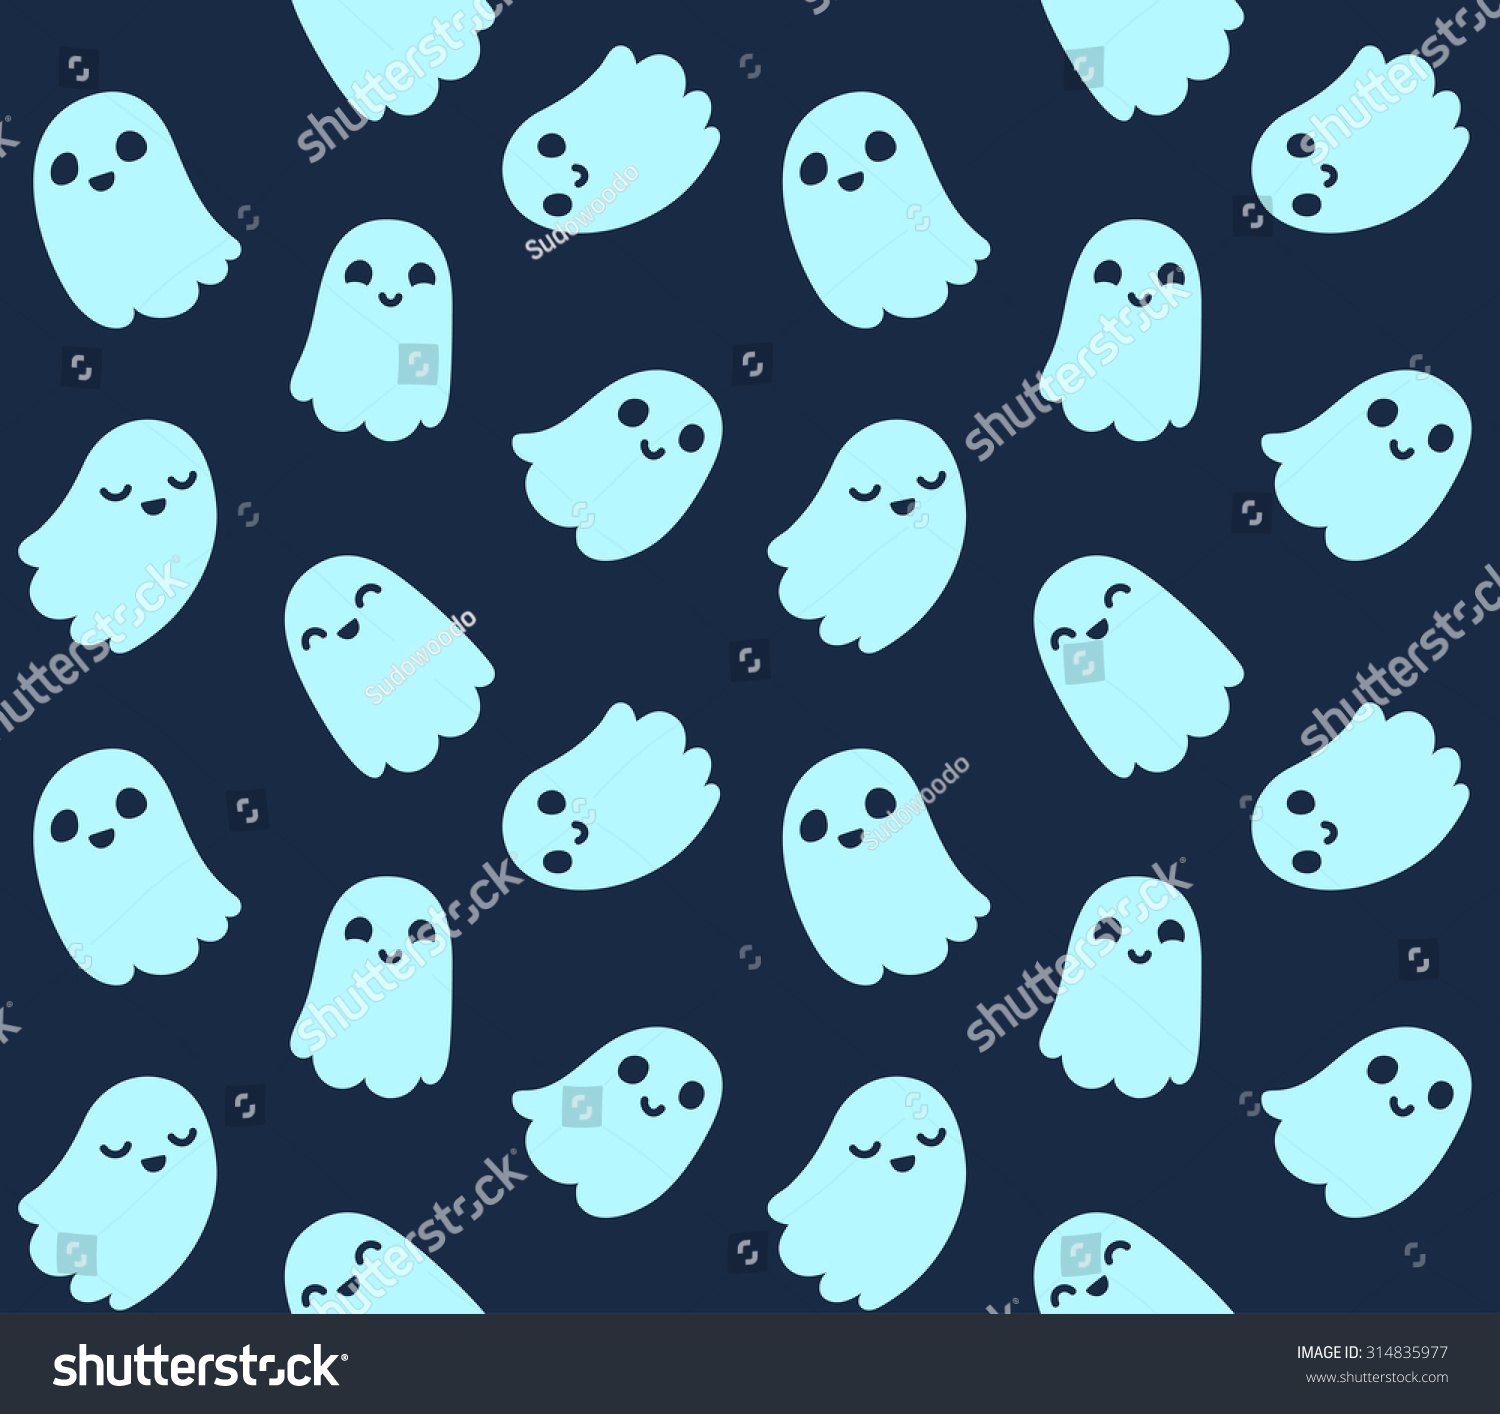 Halloween Background Seamless Pattern Cute Cartoon Stock Vector ...